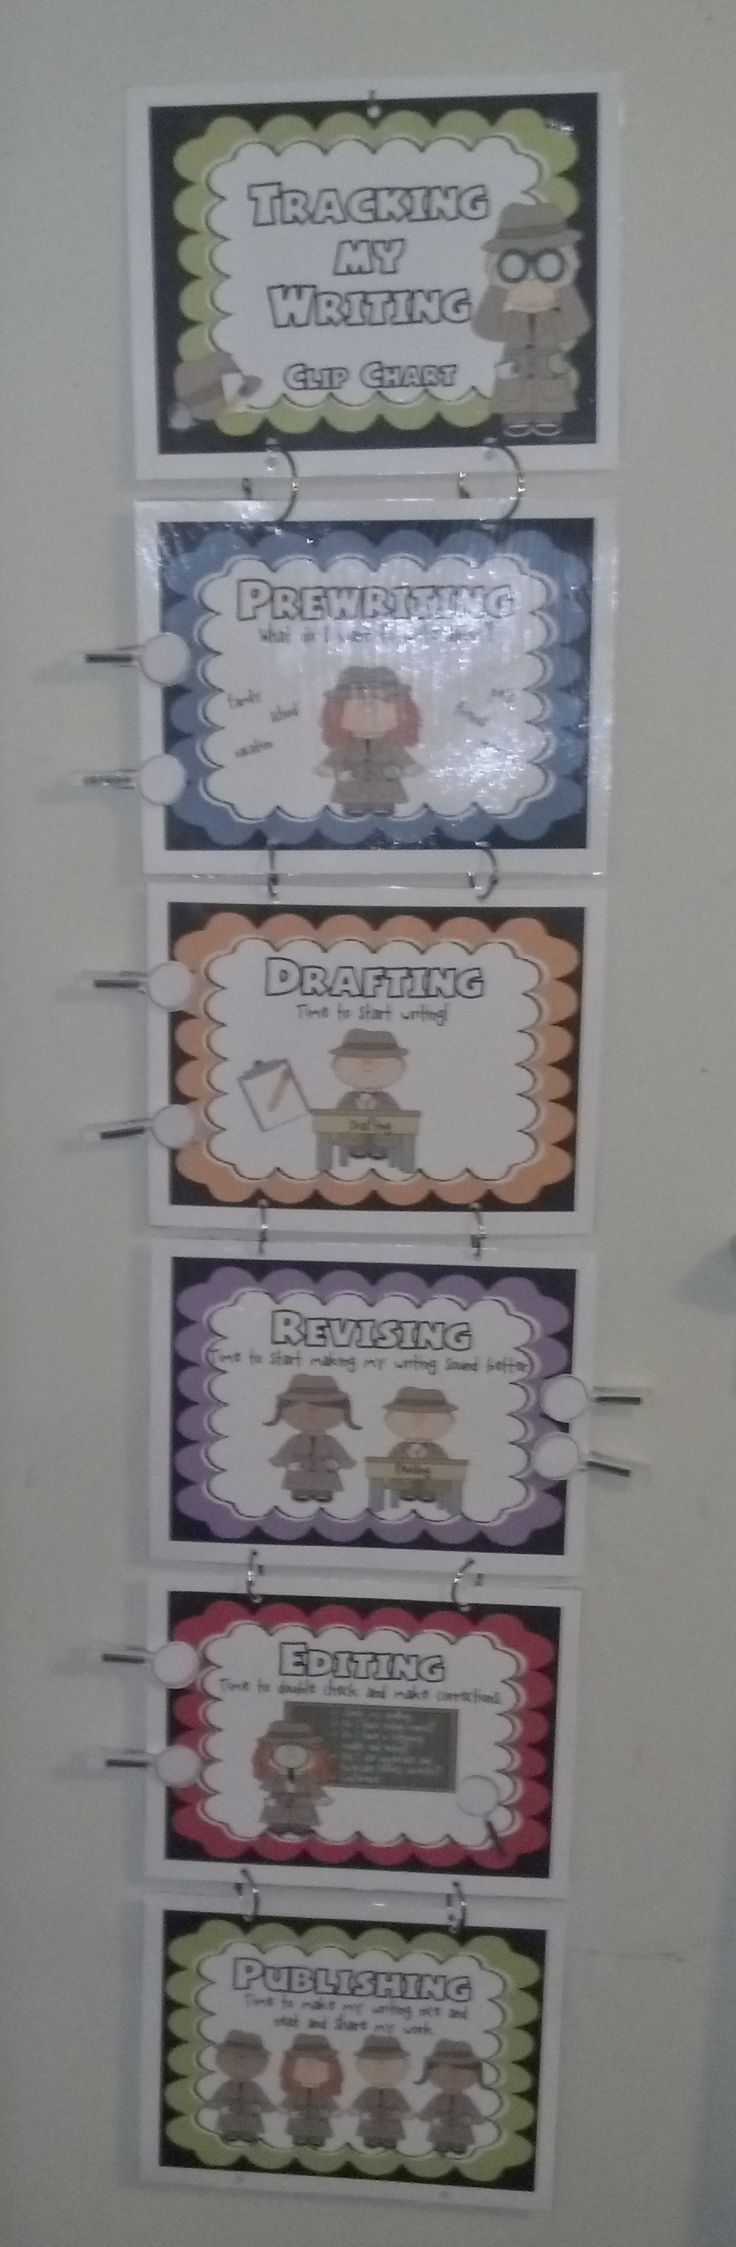 """$2 """"Tracking My Writing"""" Clip Chart (Detective Theme Writing Process Student Interactive Posters) Students and teachers will use this cute detective theme tracking chart to keep track of where everyone is in the writing process. Each resource poster has a brief description of the step, along with visuals for young writers."""